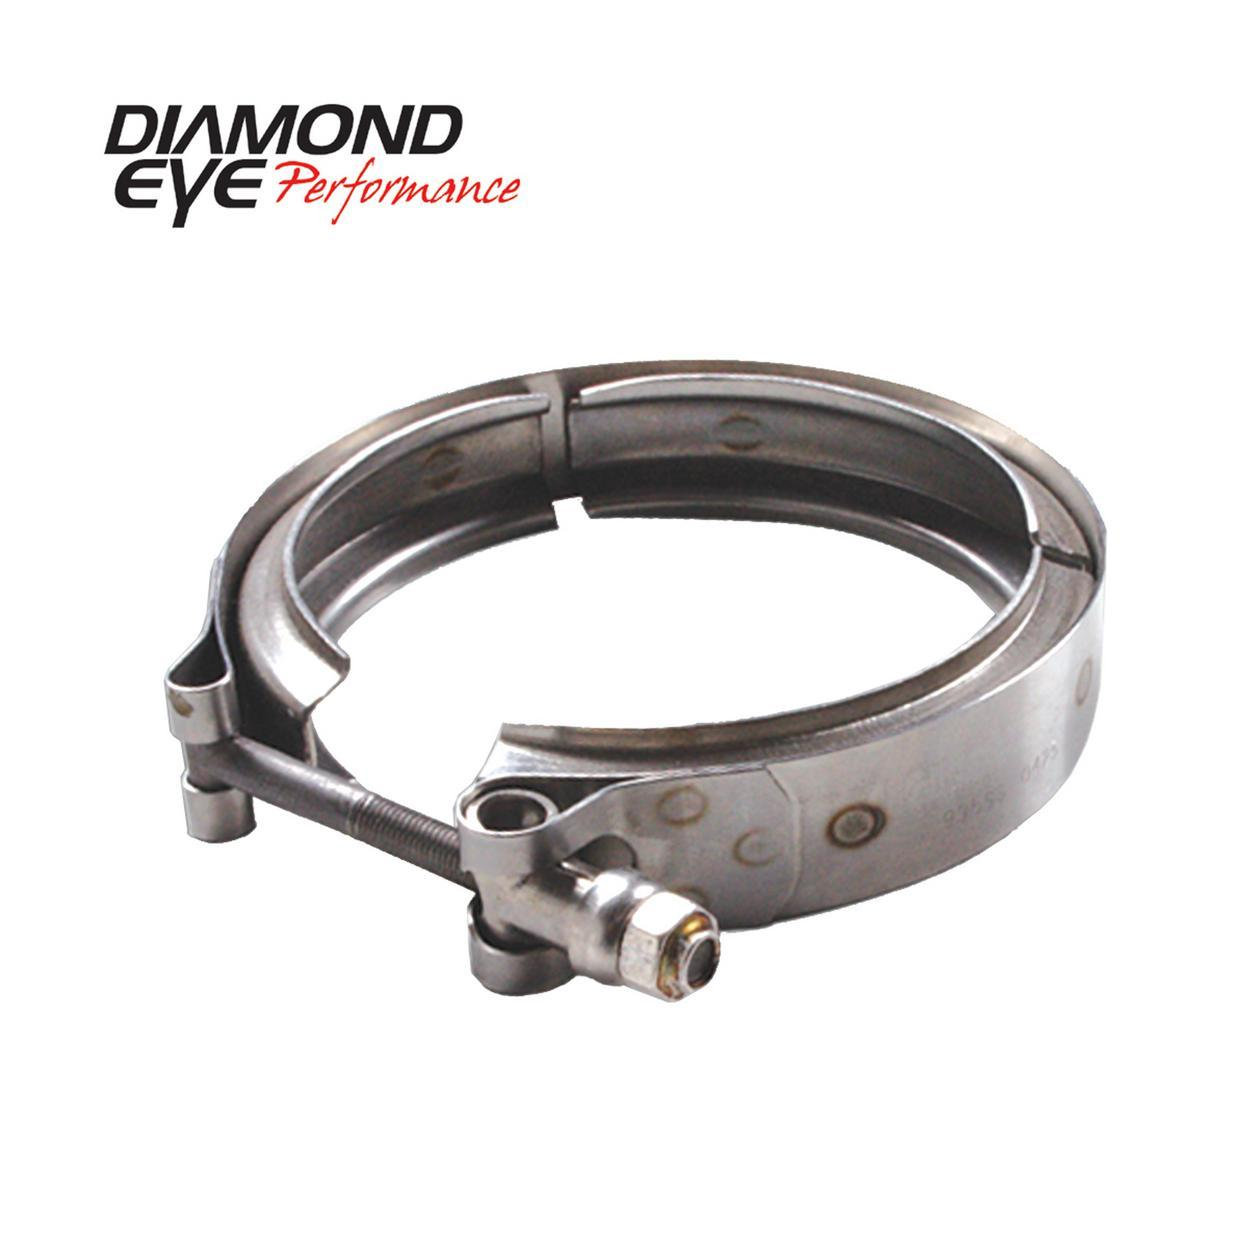 Diamond Eye Performance VC400HX40 PERFORMANCE DIESEL EXHAUST PART-V-BAND CLAMP FOR HX40 STYLE TURBO